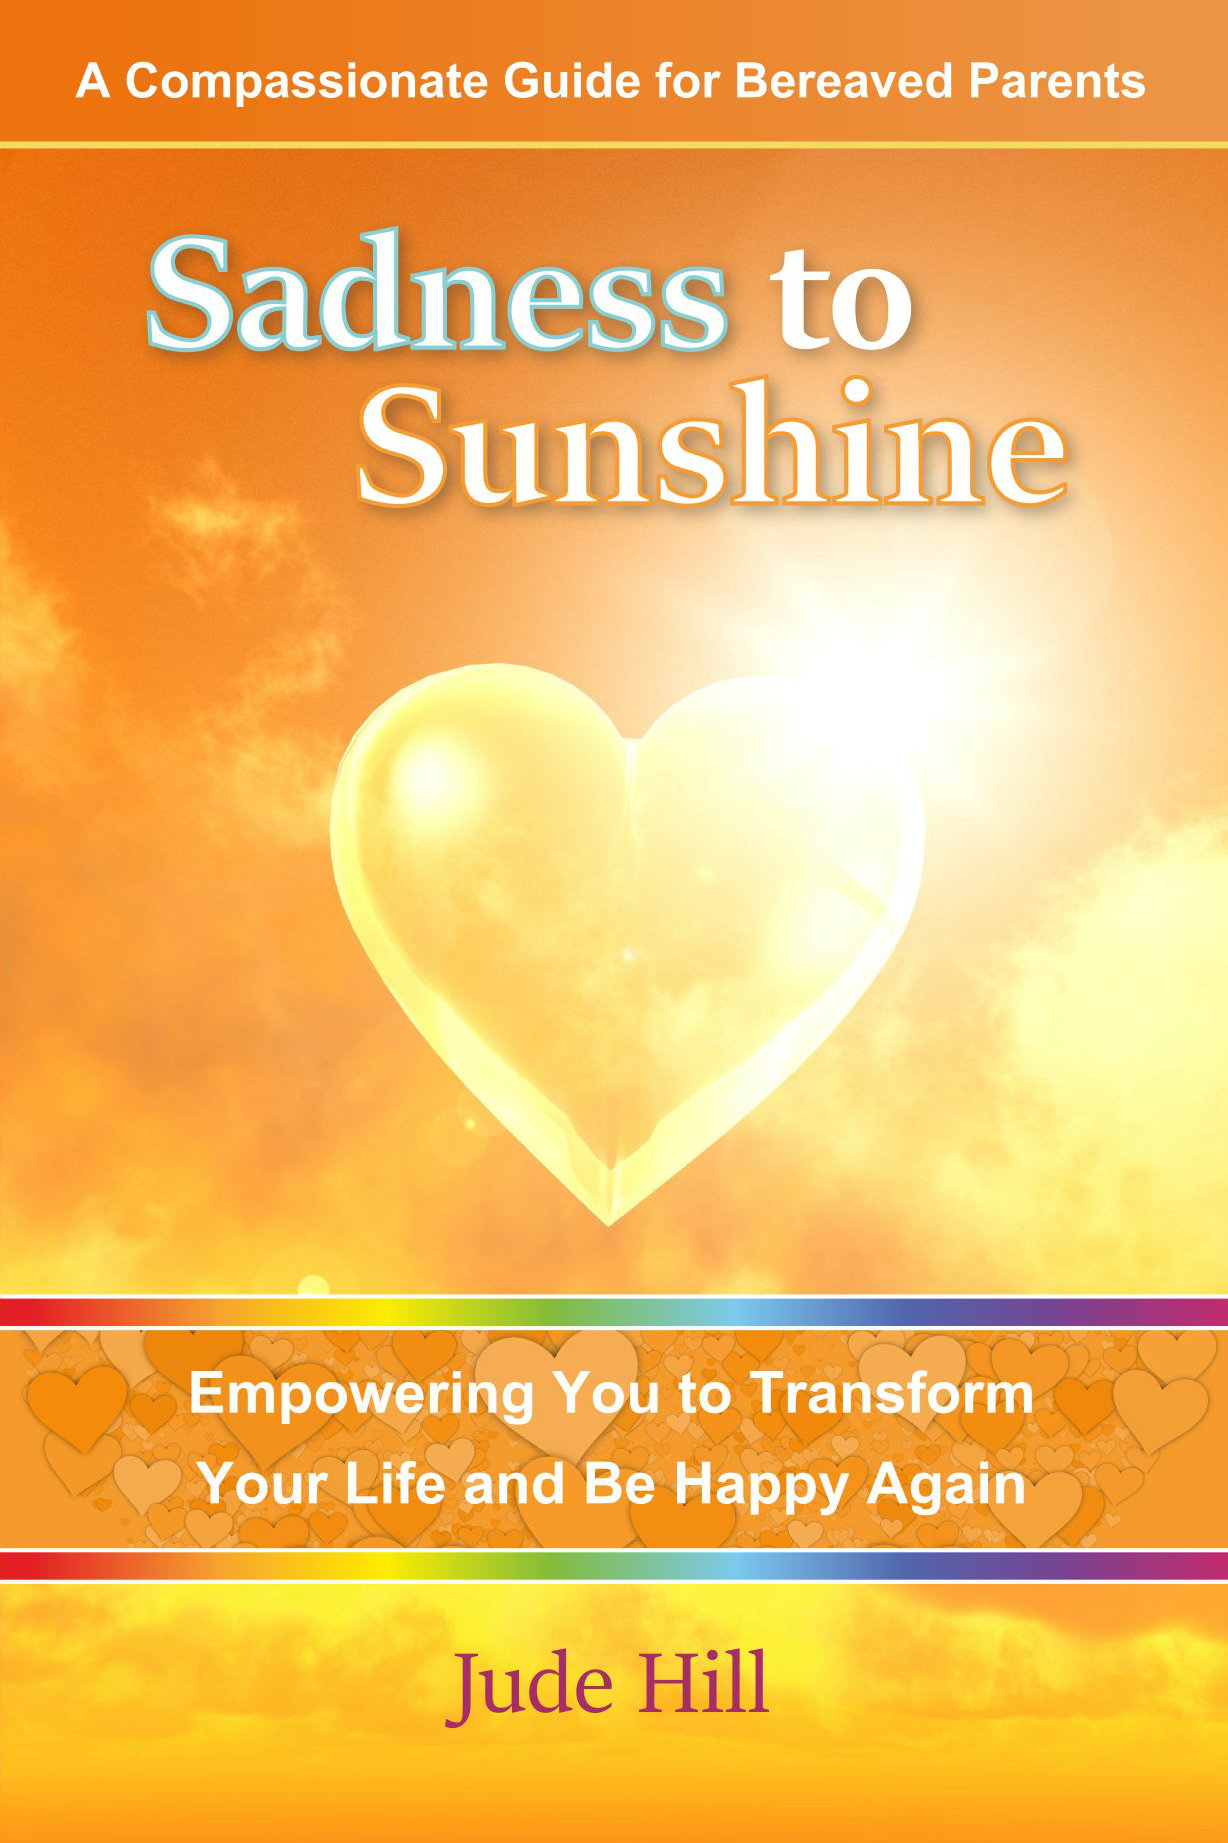 Sadness to sunshine book on grief, bereavement and loss